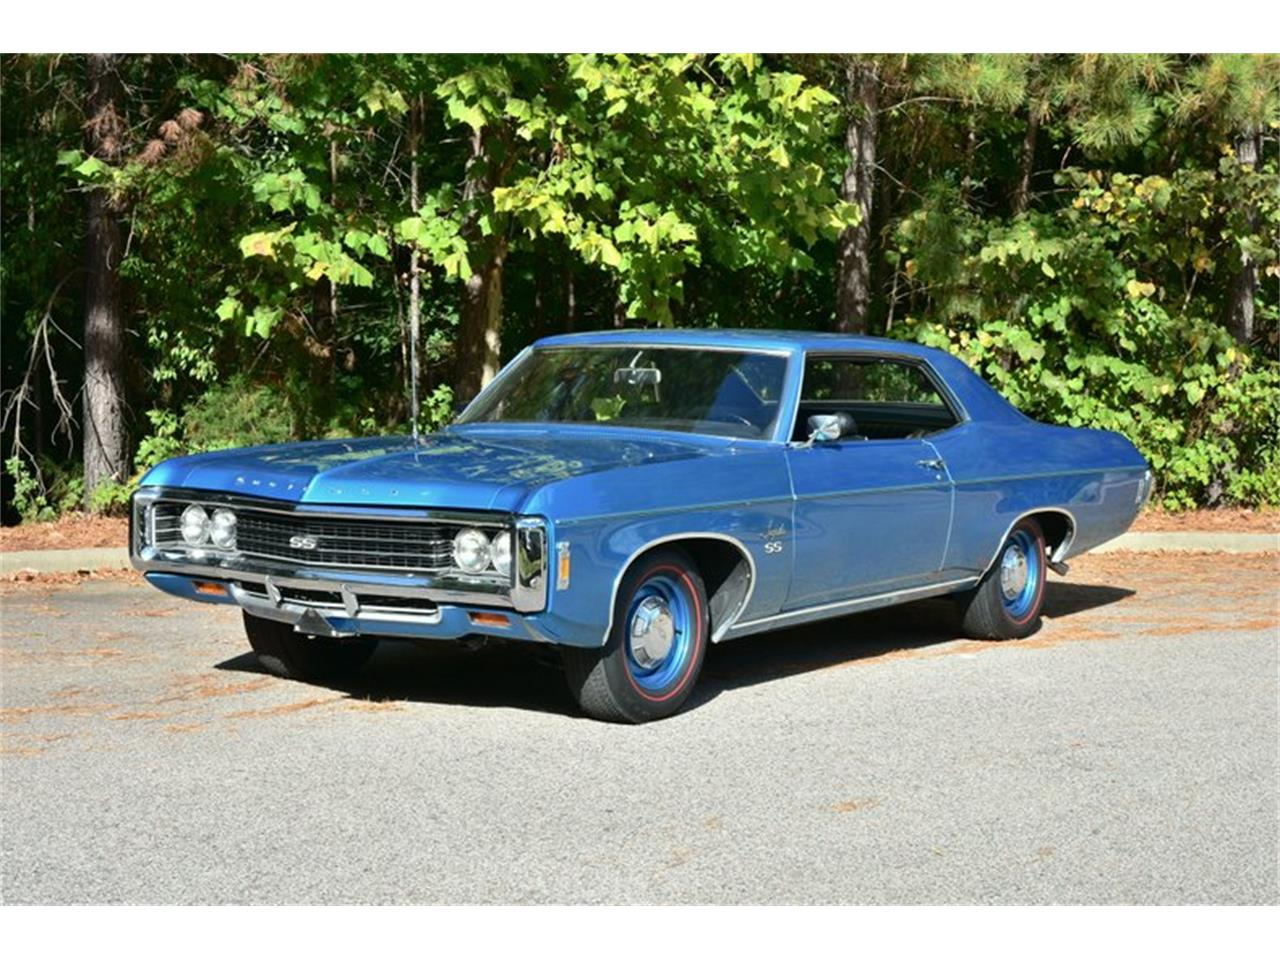 1969 Chevrolet Impala (CC-1273181) for sale in Raleigh, North Carolina